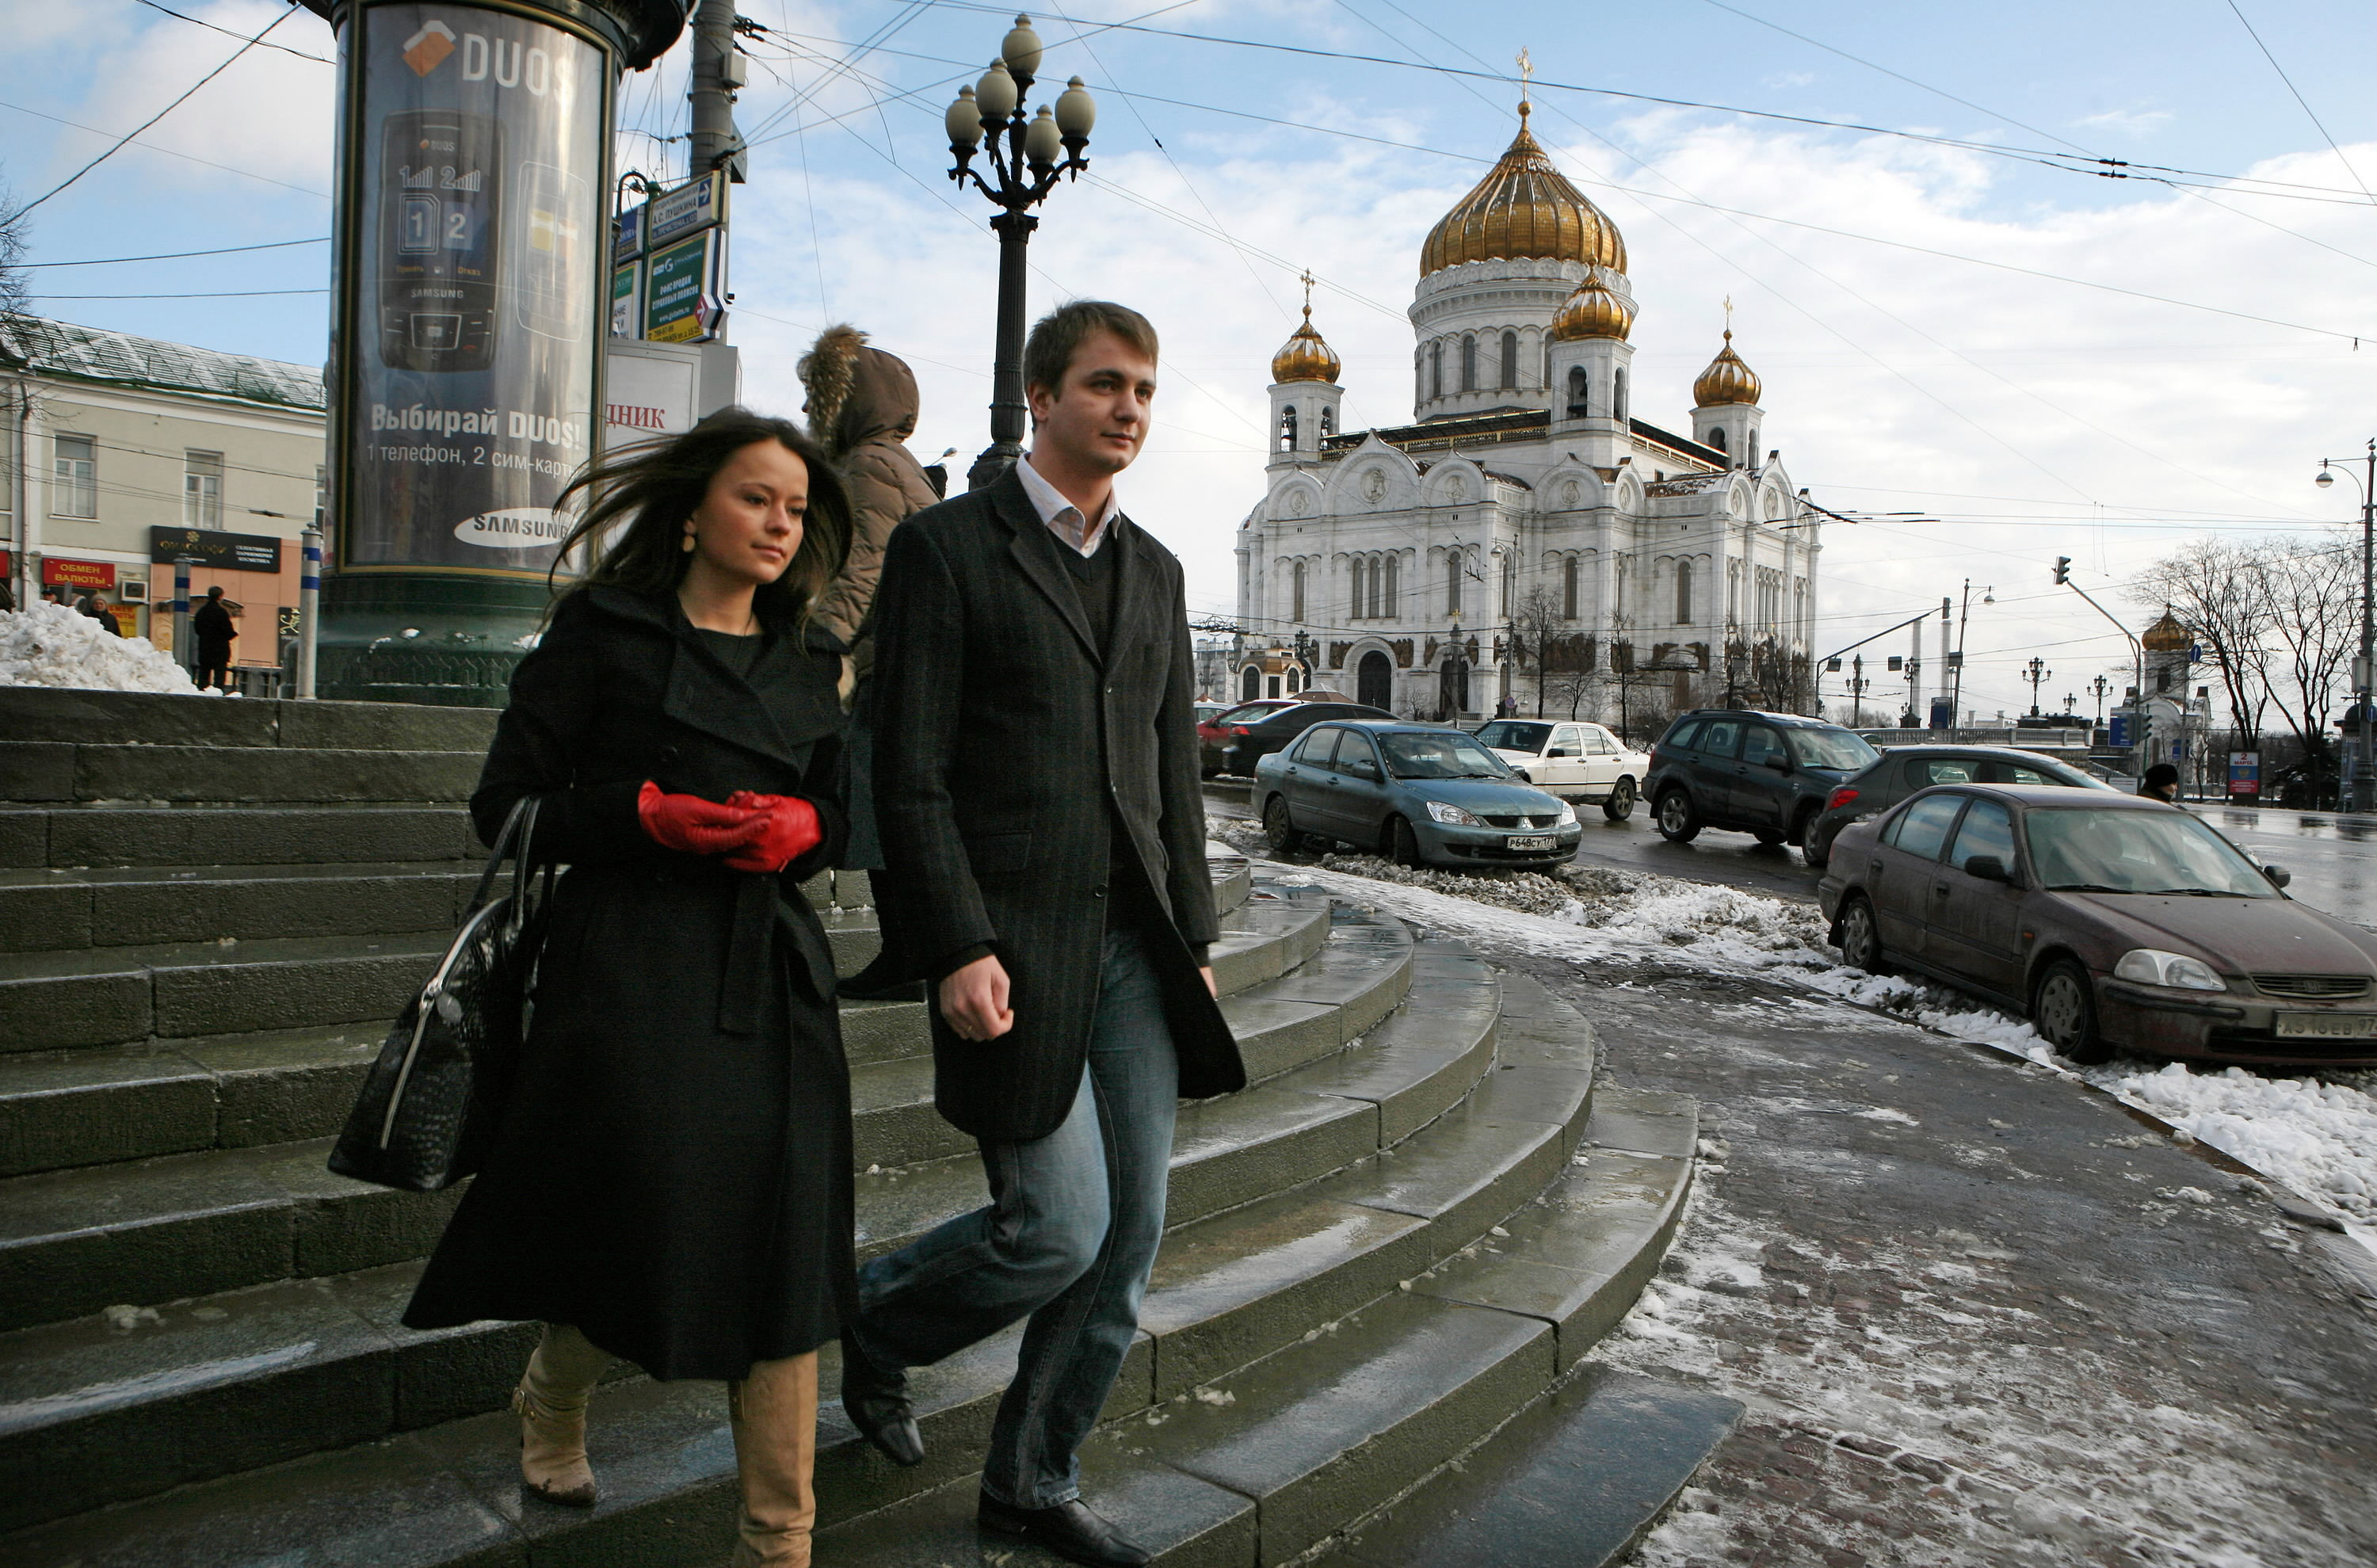 Kirill Shchitov walks past a Russian Orthodox church with his fiancee, Elena Filatova, in Moscow, Russia, in this undated photo. He is a believer and ...